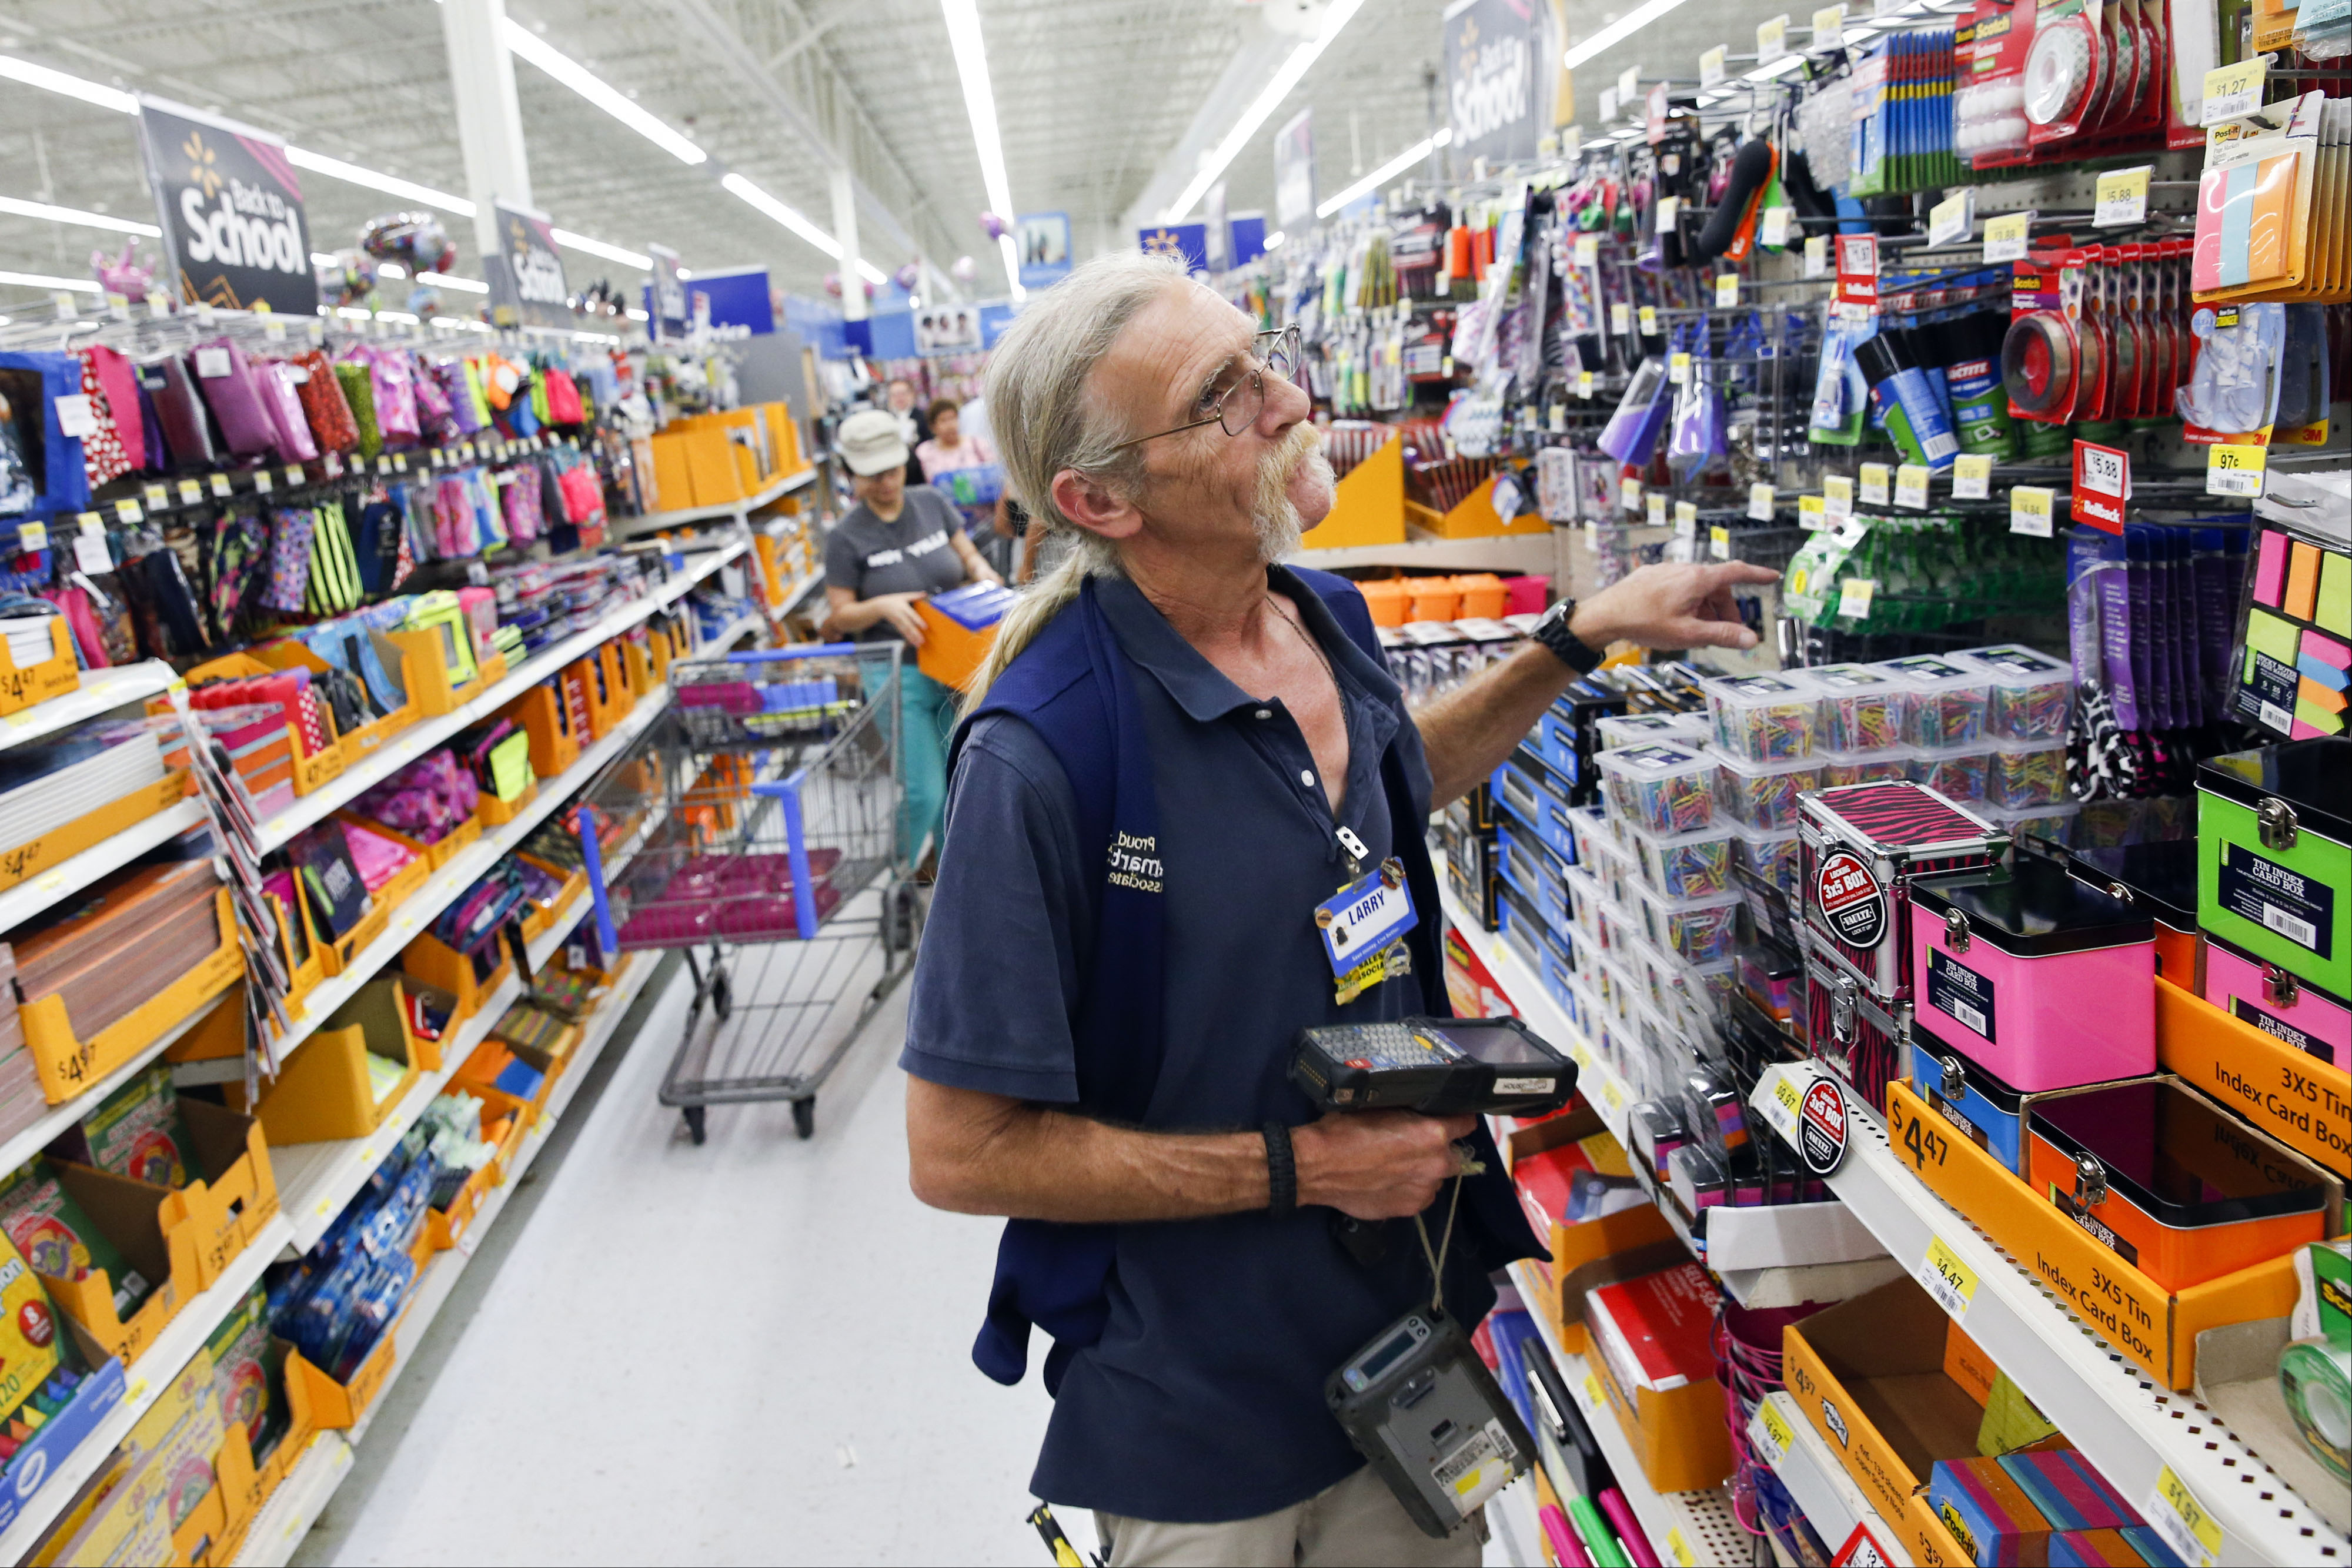 A Wal-Mart Stores Inc. associate checks inventory of school supplies at a Wal-Mart Stores Inc. location in the Porter Ranch neighborhood of Los Angeles, California, U.S., on Thursday, August 6, 2015.